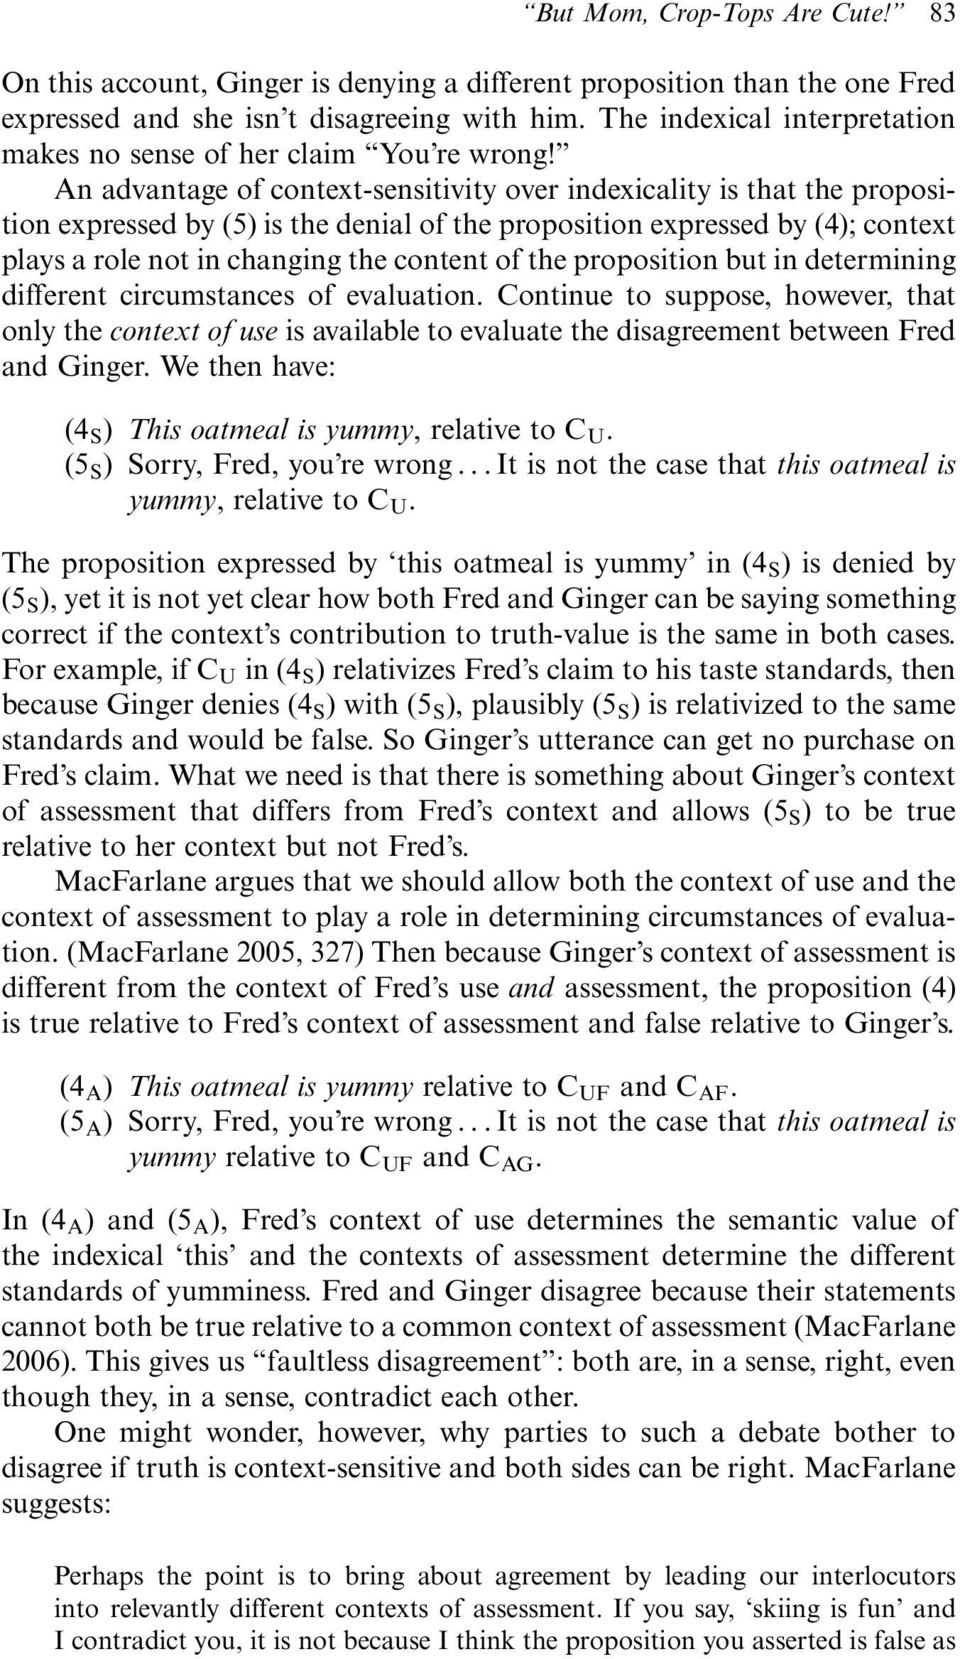 An advantage of context-sensitivity over indexicality is that the proposition expressed by (5) is the denial of the proposition expressed by (4); context plays a role not in changing the content of